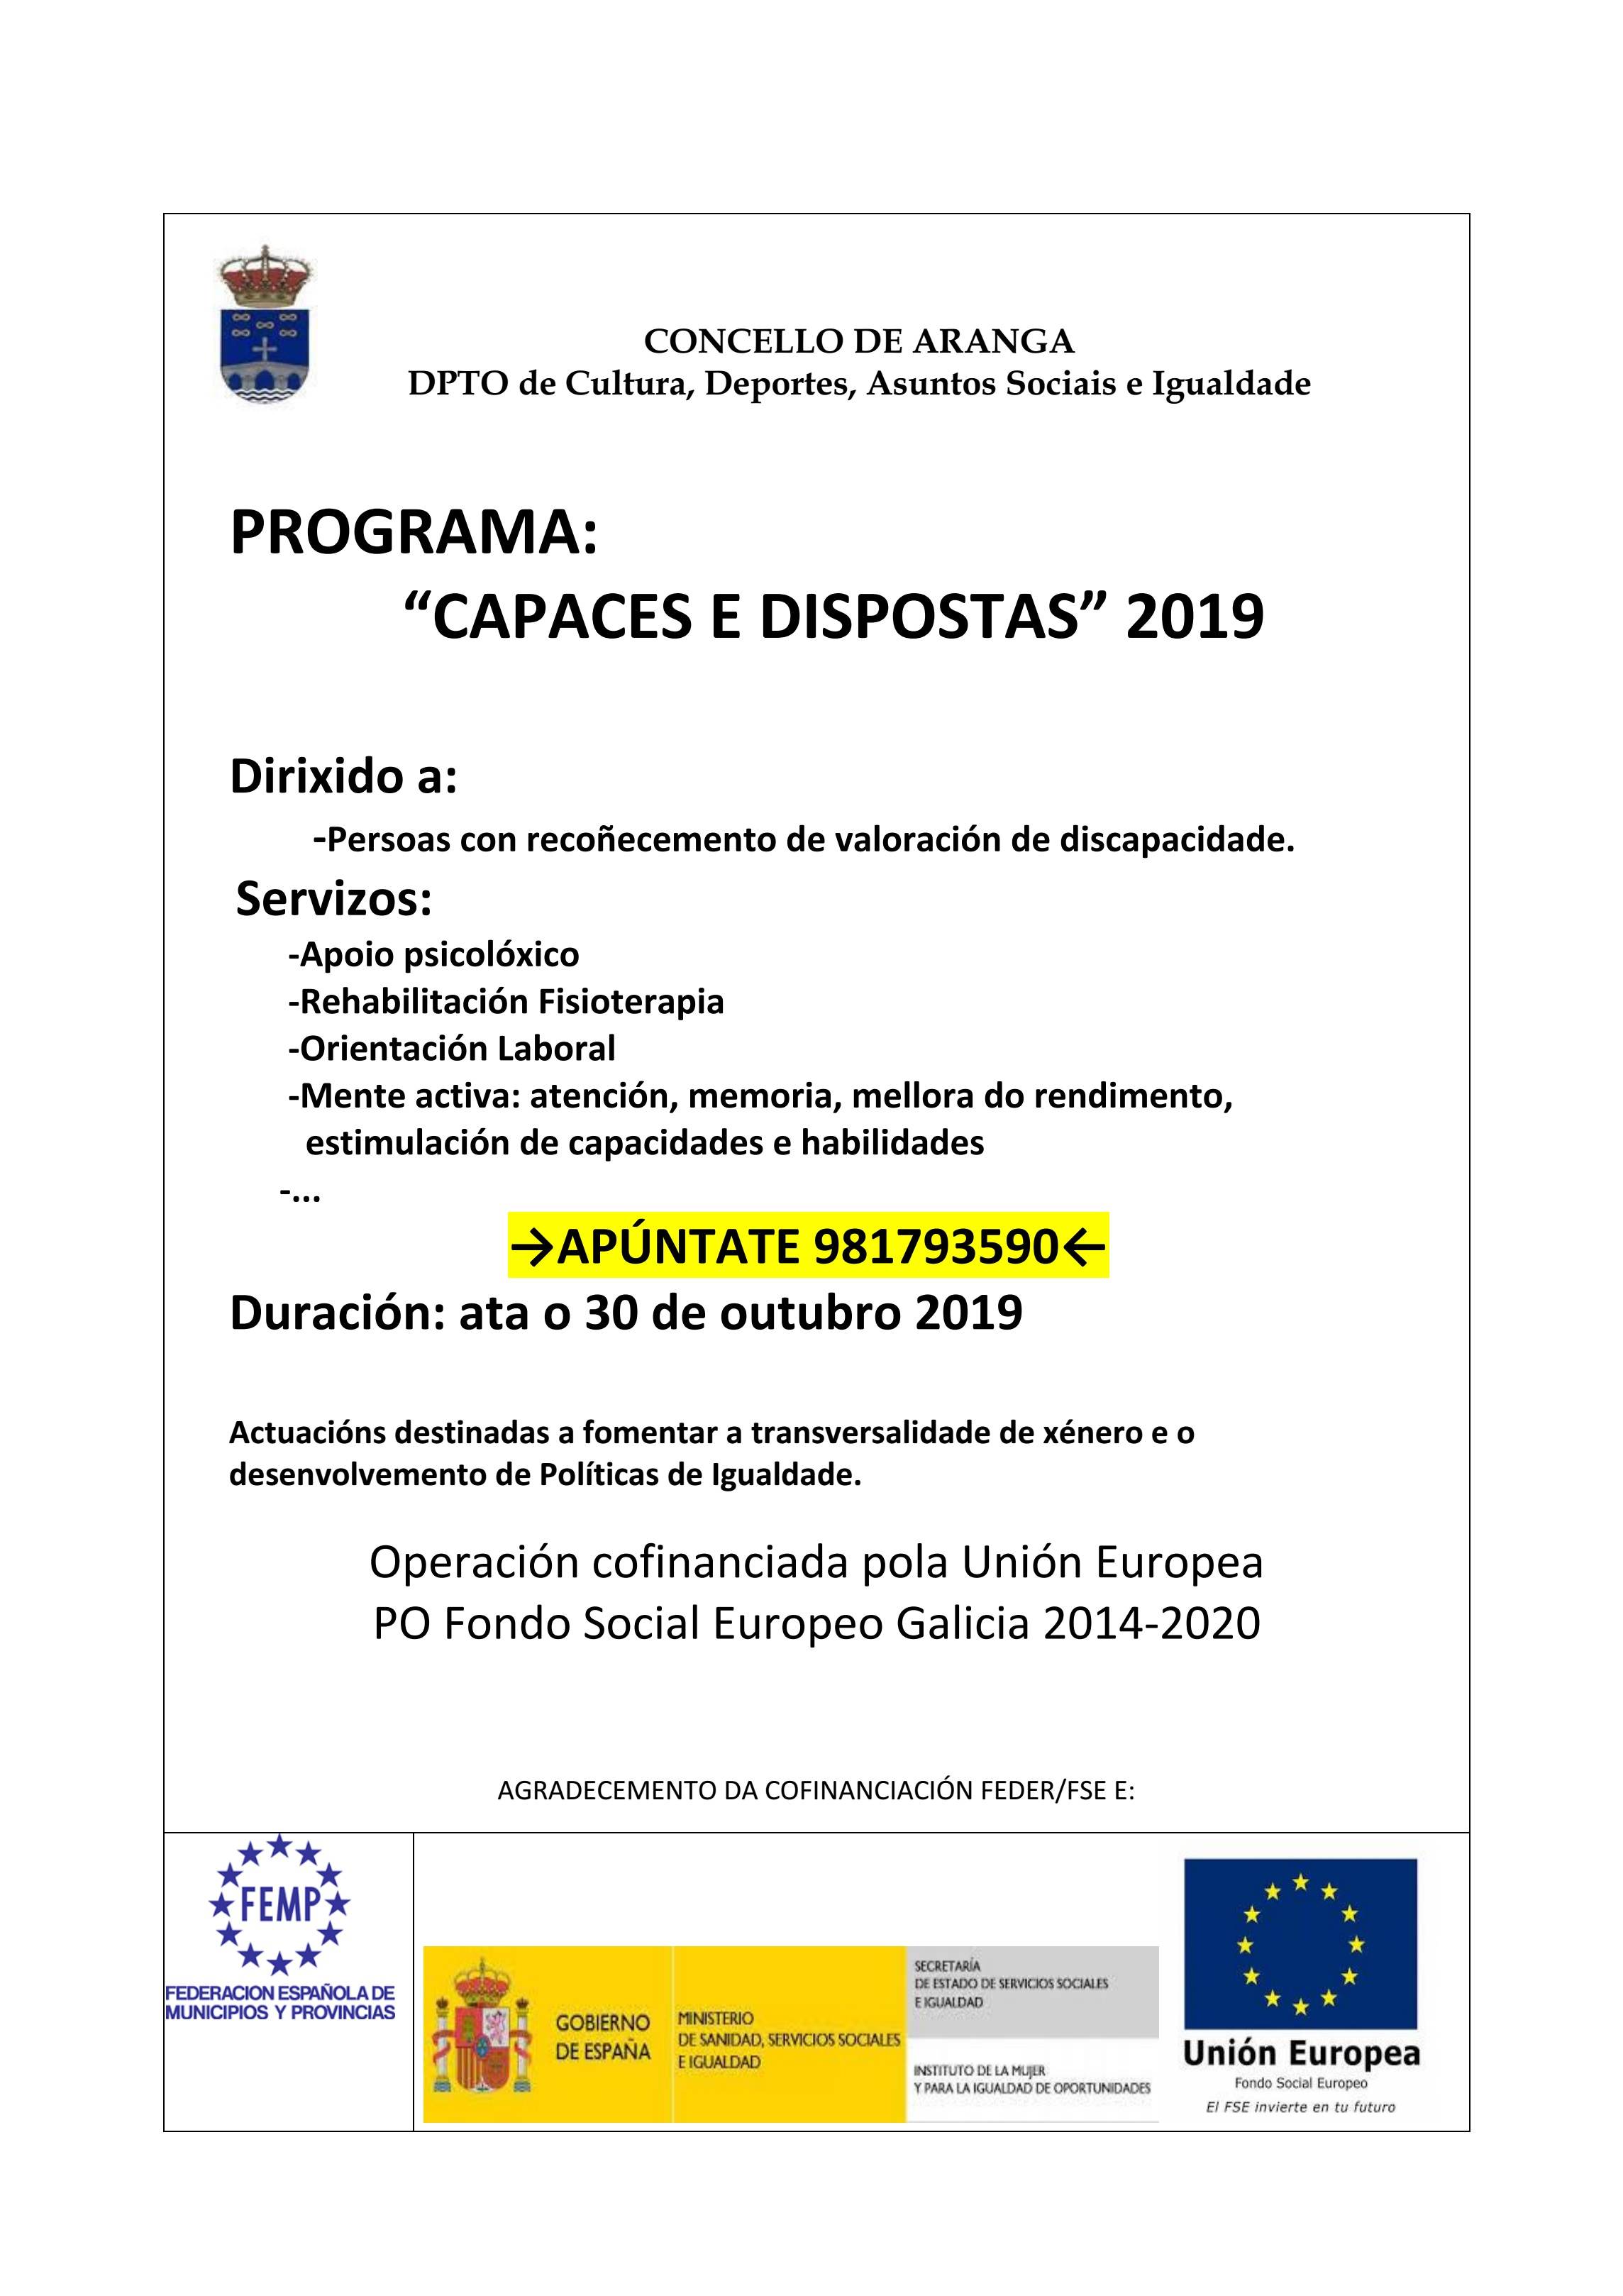 programa capaces e dispostas 2019